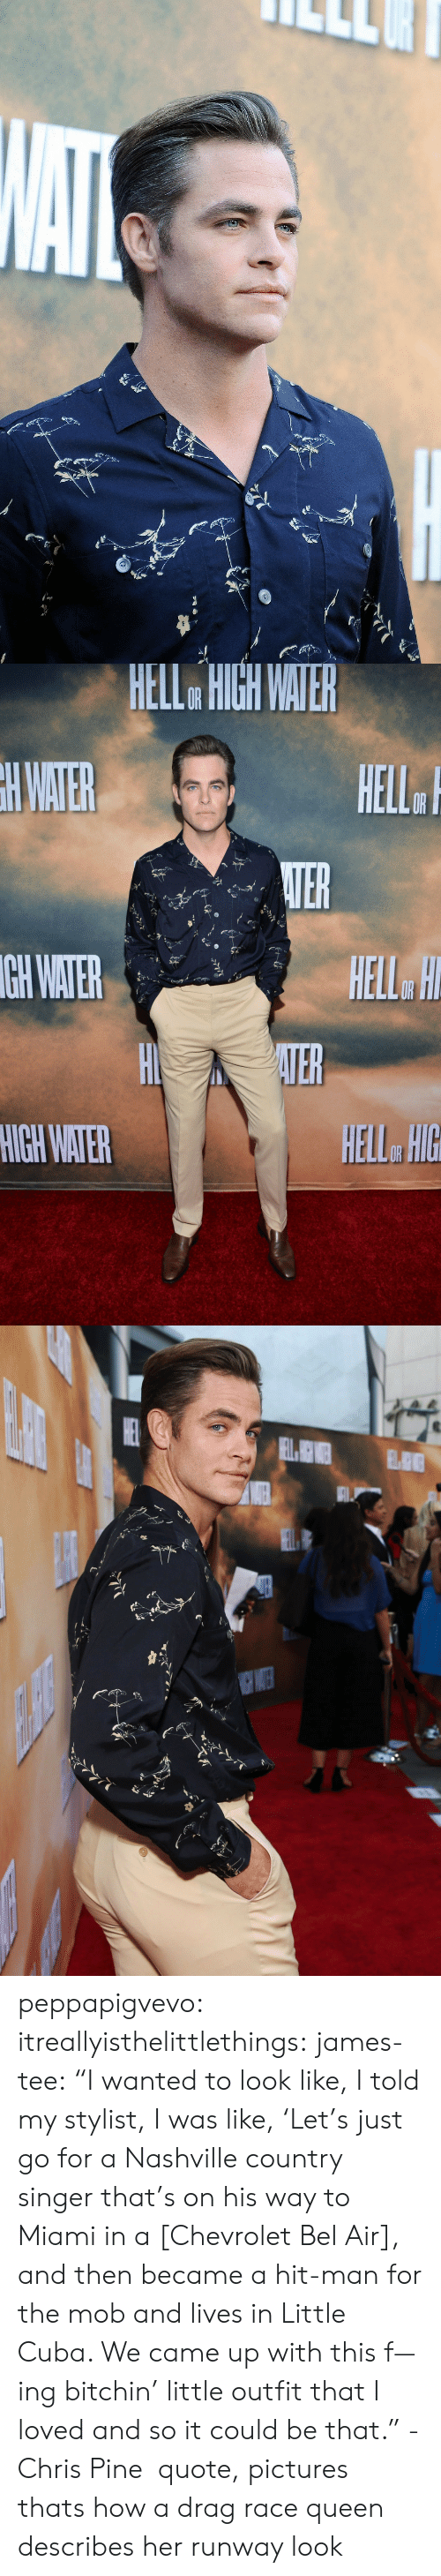 """Chris Pine: HELL  HIGH  WATE  GH  WATER  HELL HIG peppapigvevo:  itreallyisthelittlethings:  james-tee:  """"I wanted to look like, I told my stylist, I was like, 'Let's just go for a Nashville country singer that's on his way to Miami in a [Chevrolet Bel Air], and then became a hit-man for the mob and lives in Little Cuba. We came up with this f—ing bitchin' little outfit that I loved and so it could be that."""" - Chris Pine quote, pictures        thats how a drag race queen describes her runway look"""